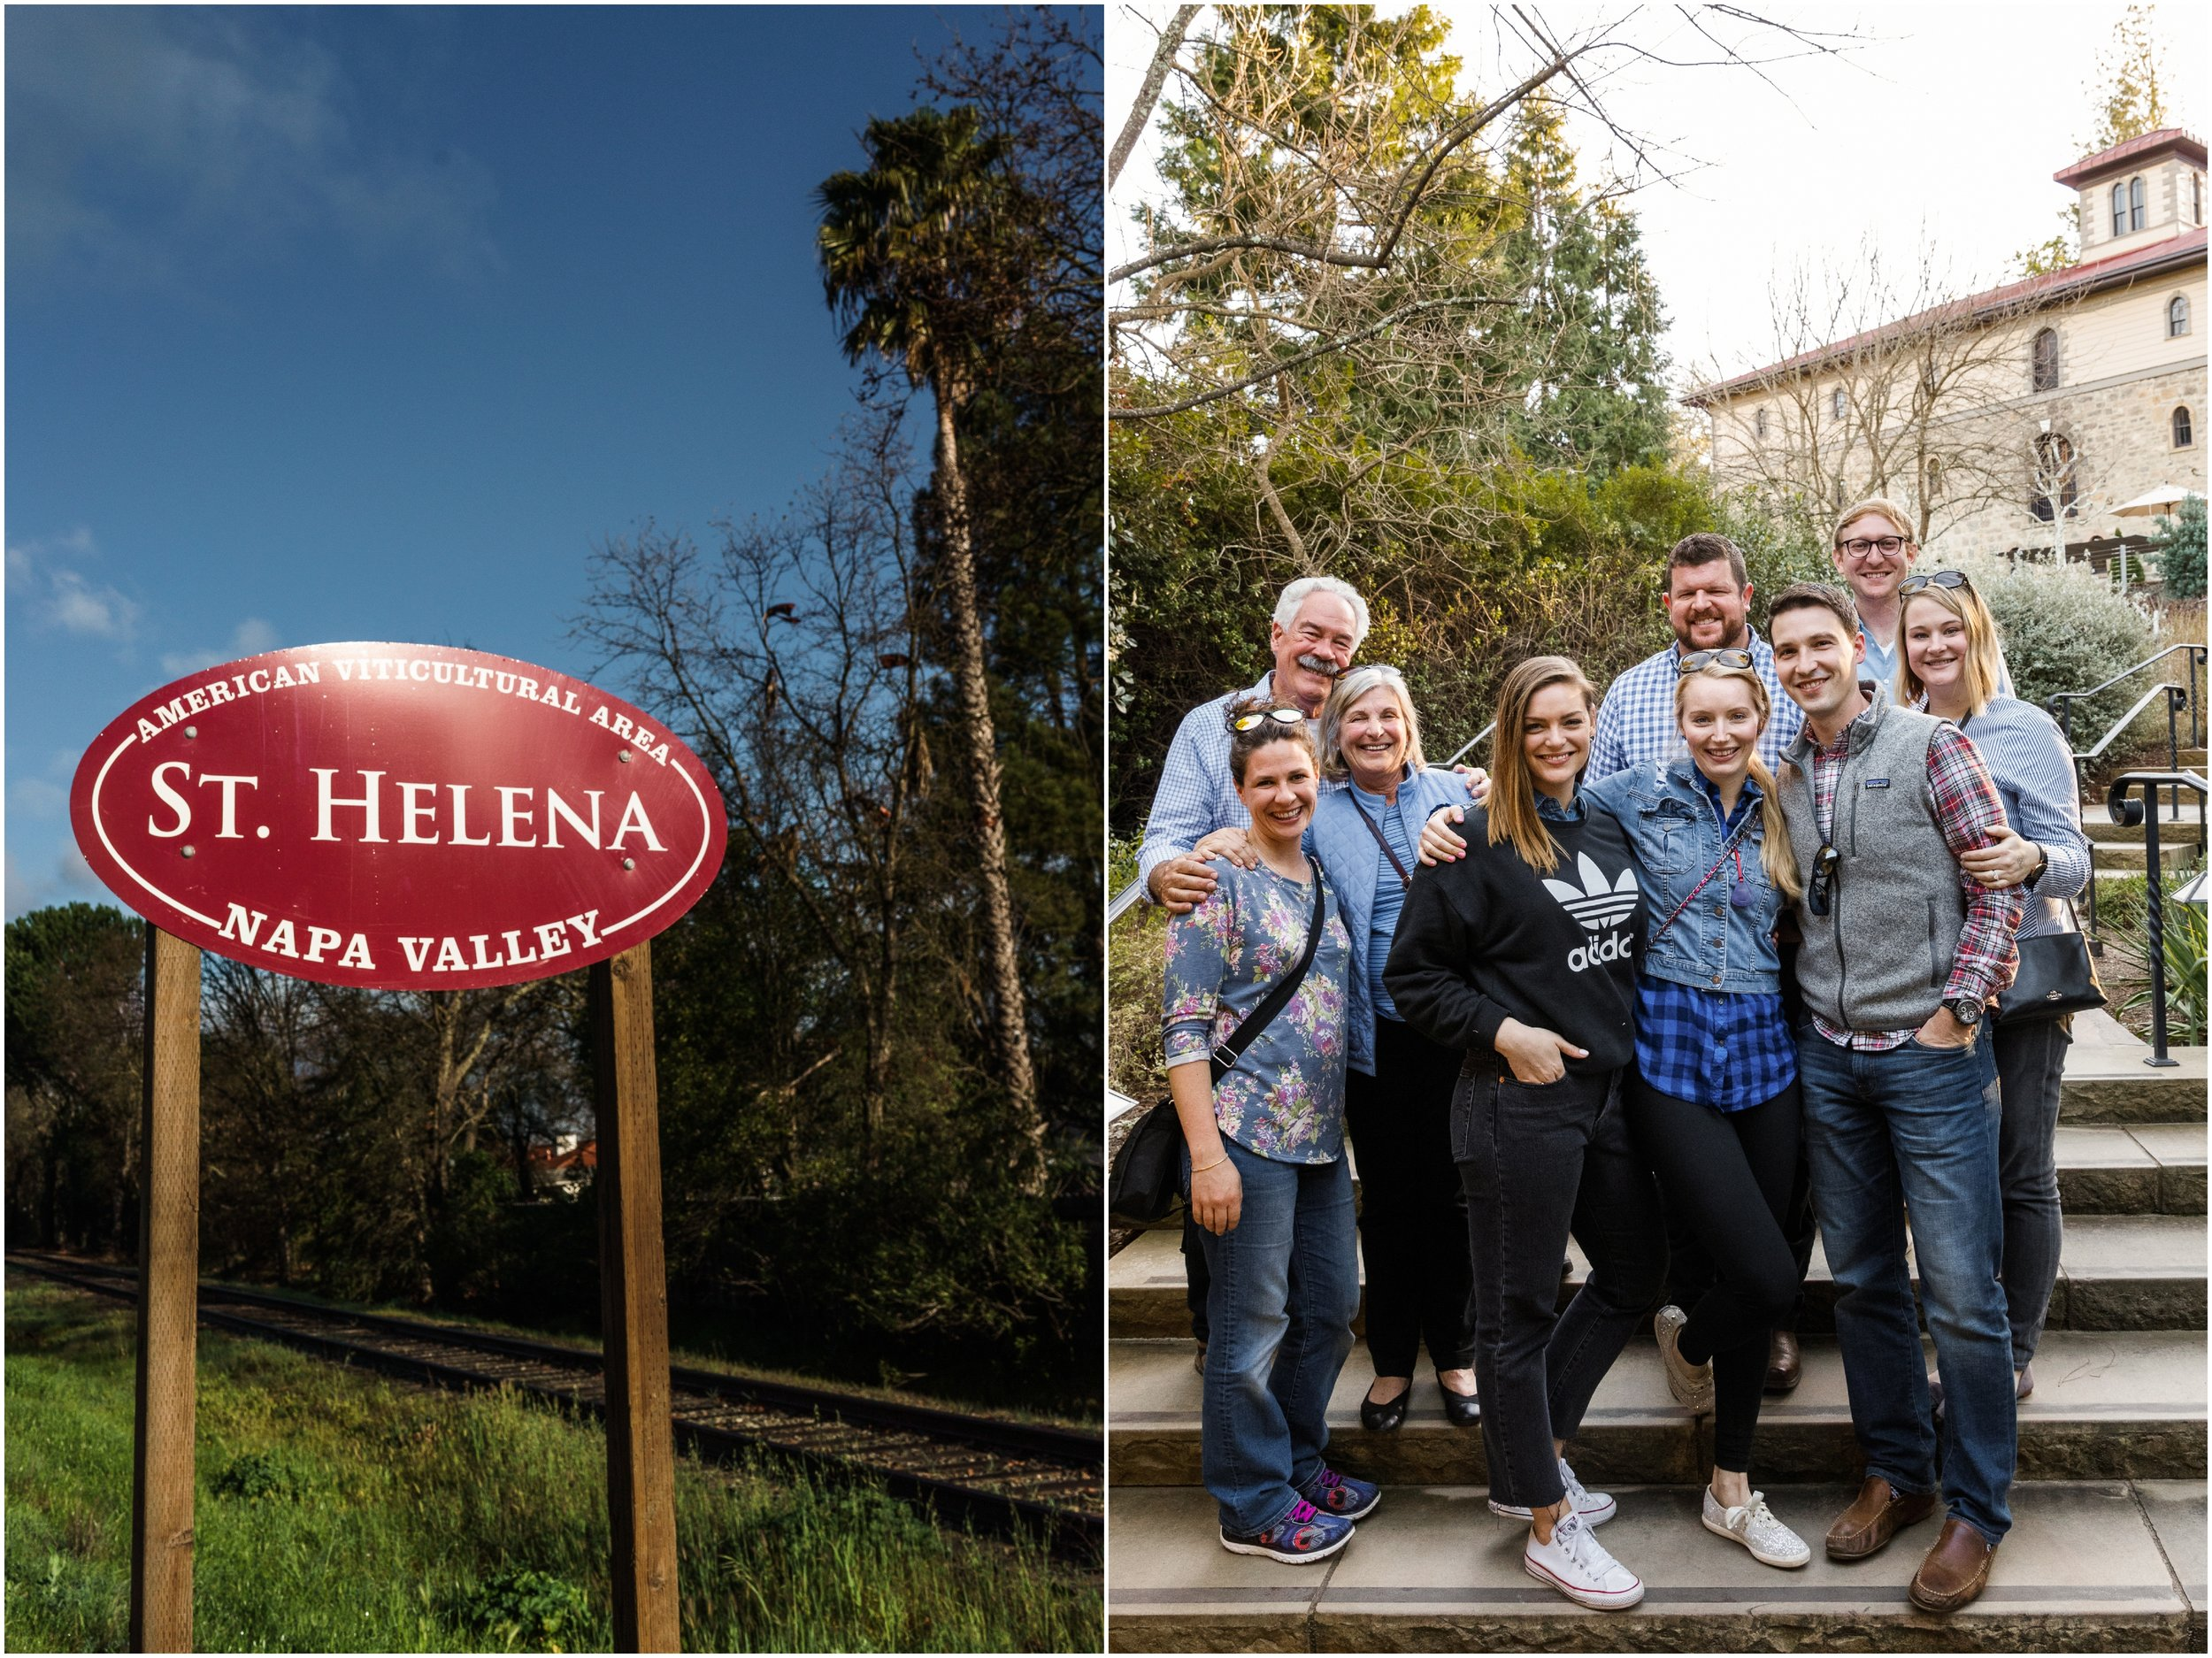 highway sign for St. Helena in Napa Valley